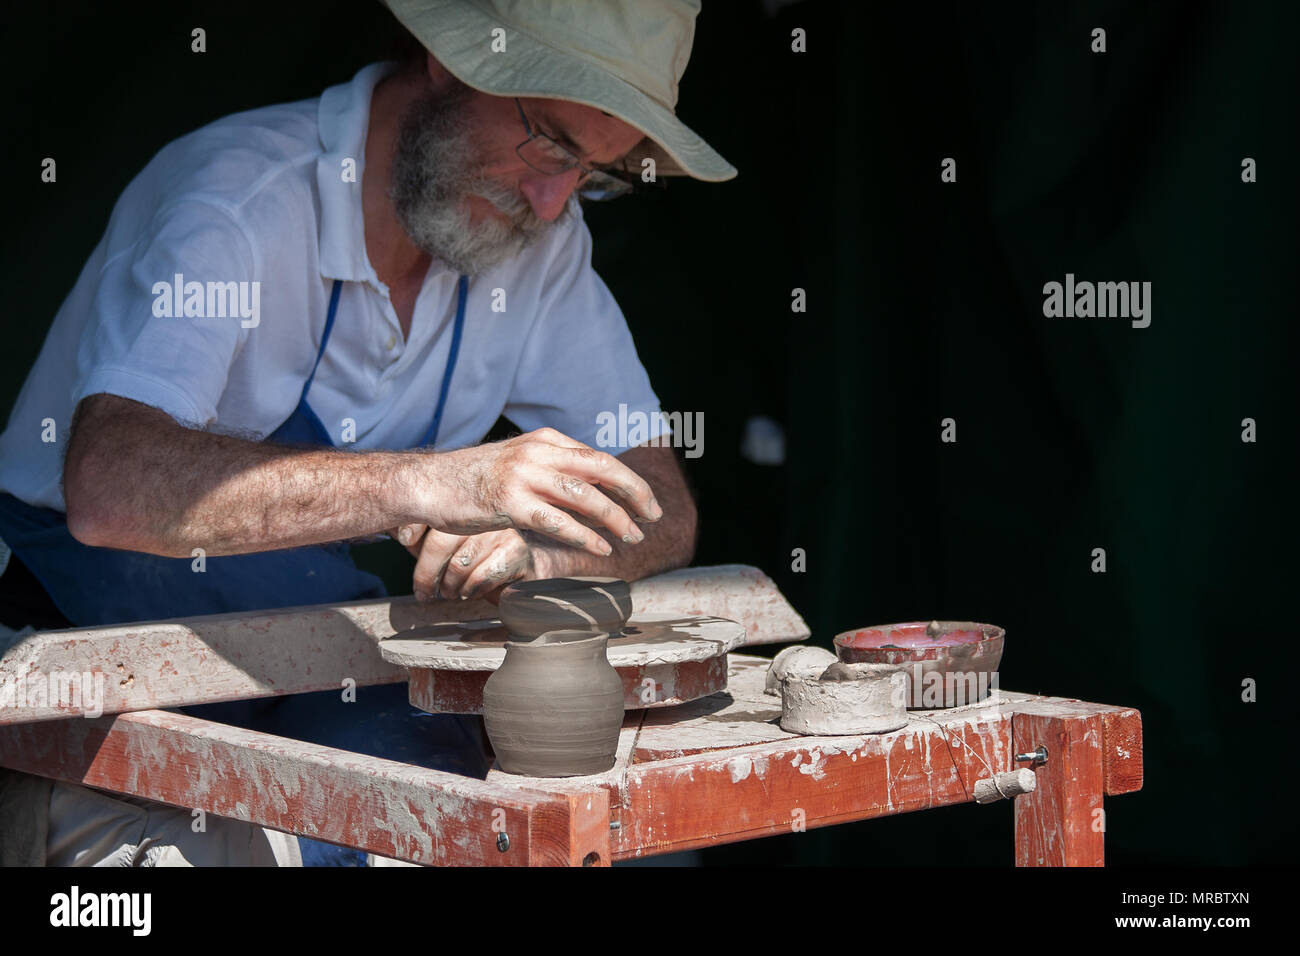 Artisan making clay pots with a manual wheel in Fountains Abbey, Ripon, UK - Stock Image